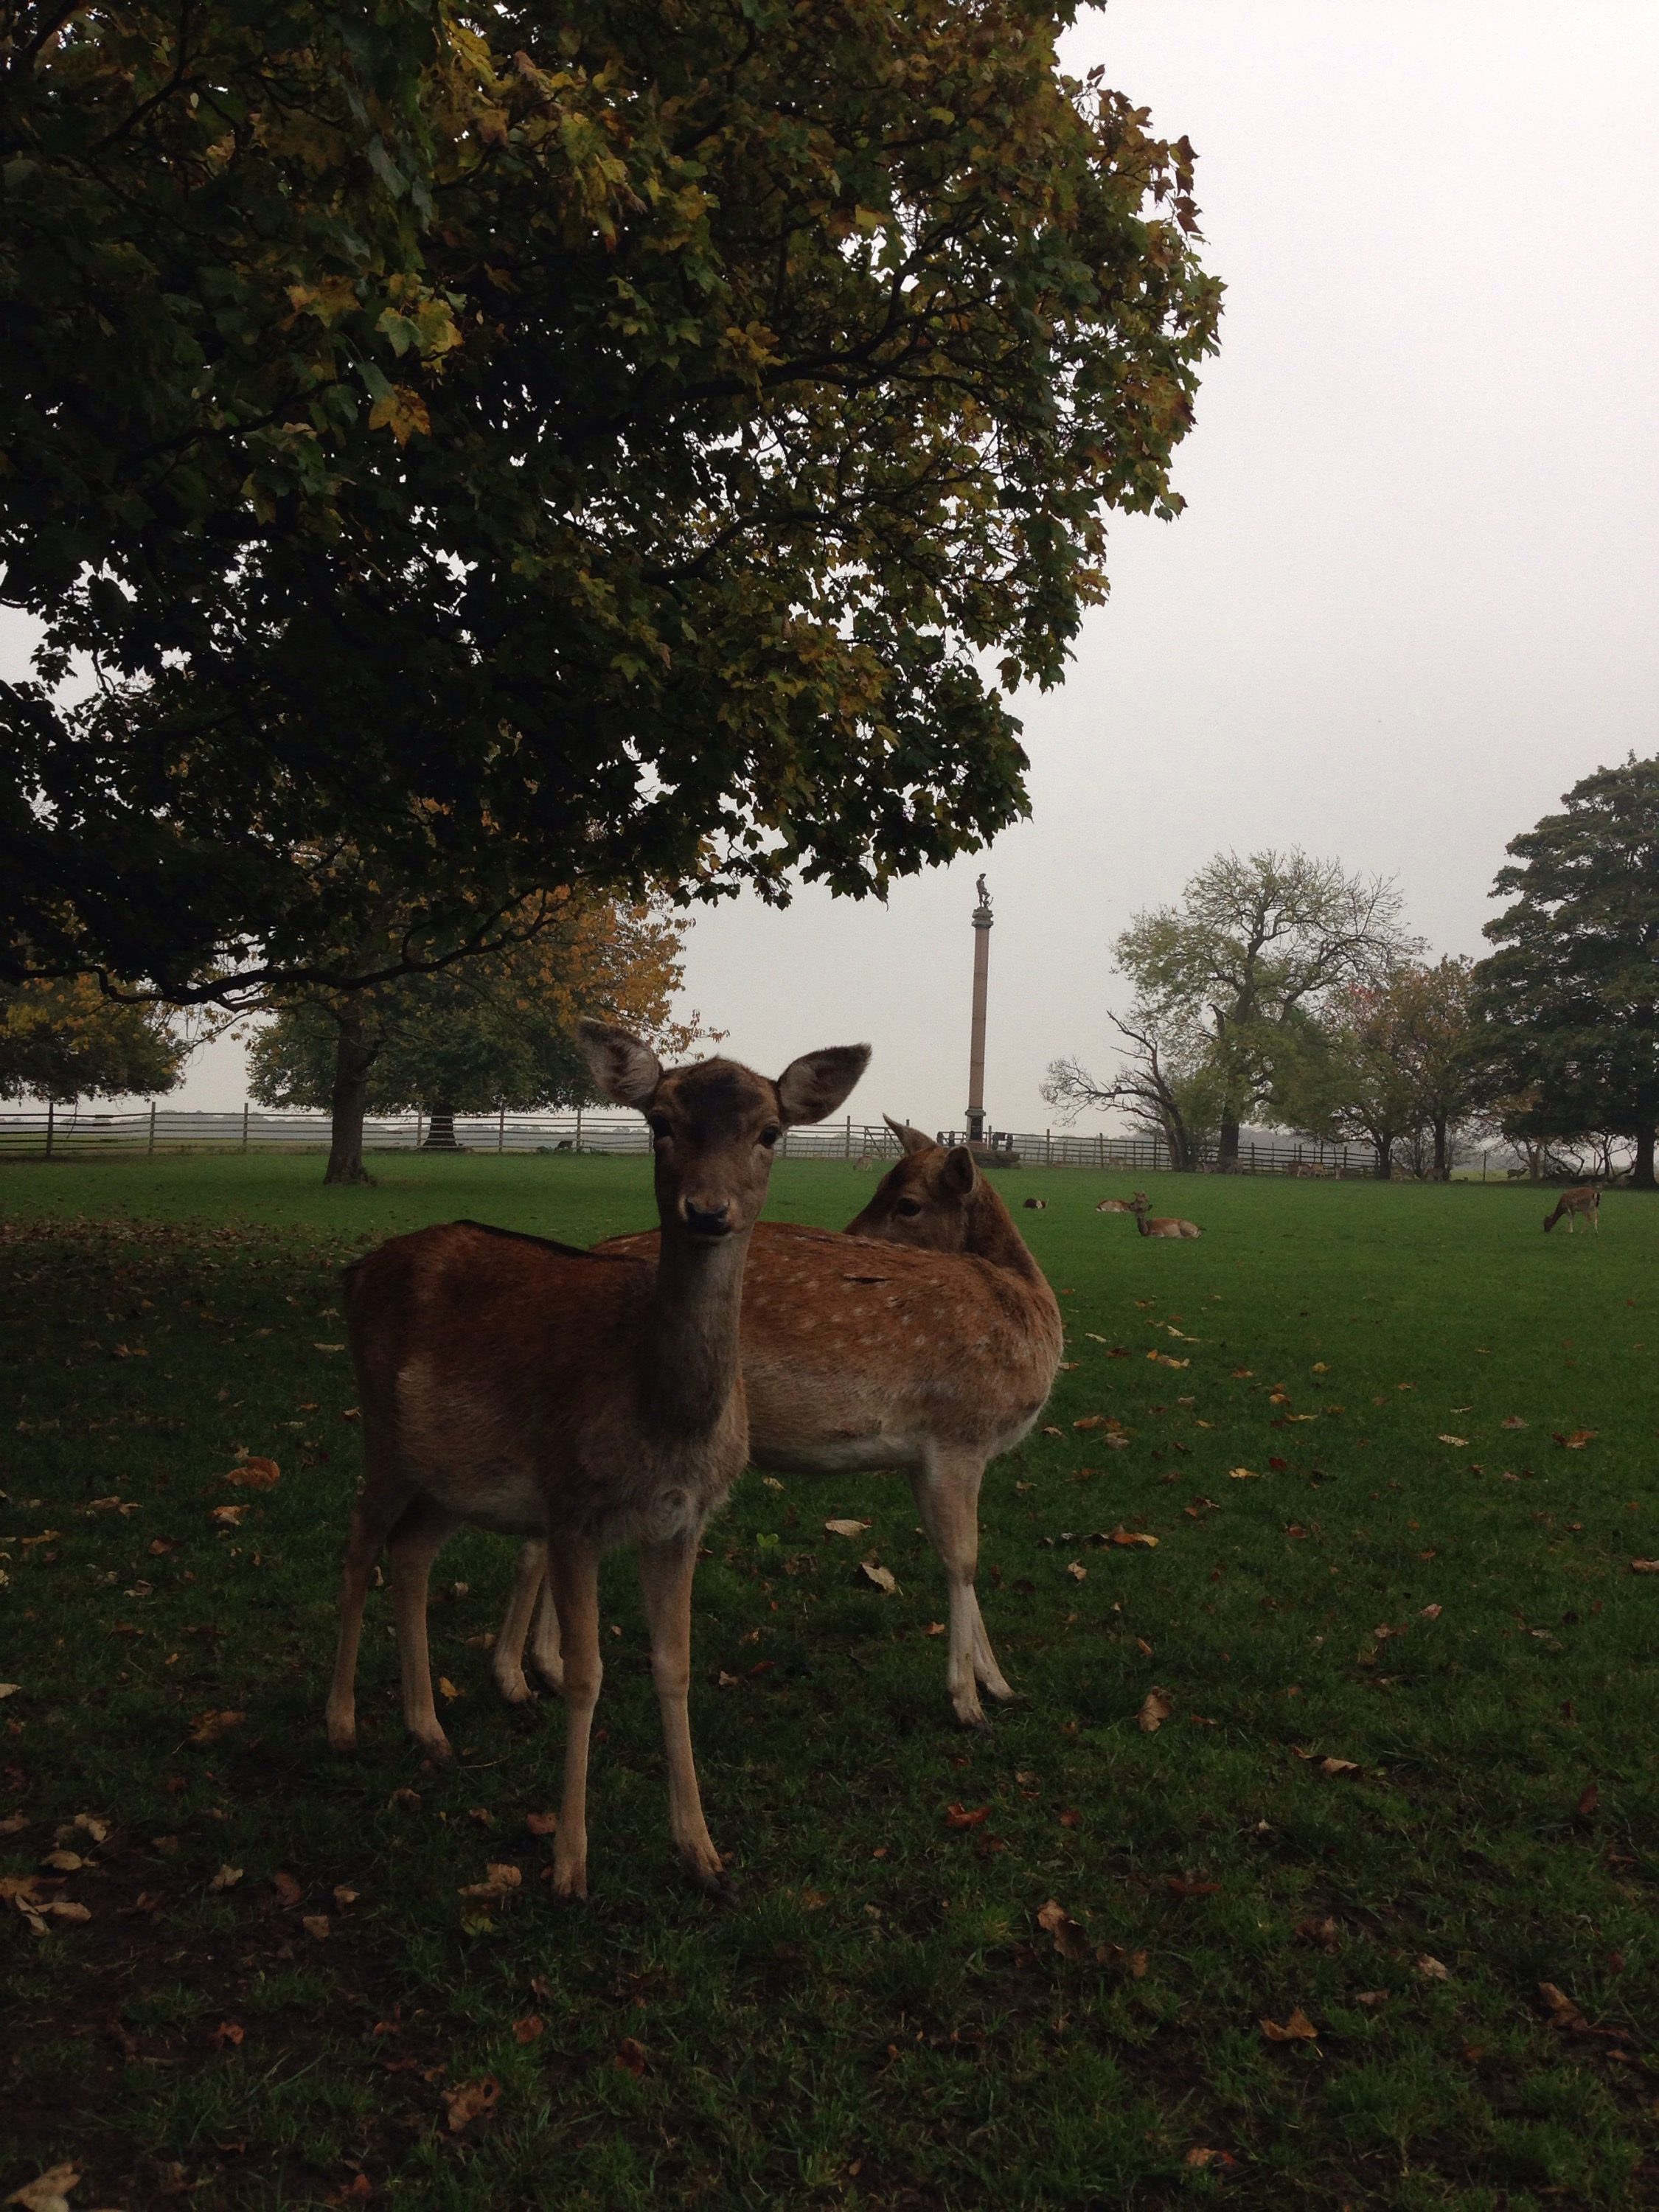 deer at whitworth hall country park with bobby shaftoe statue